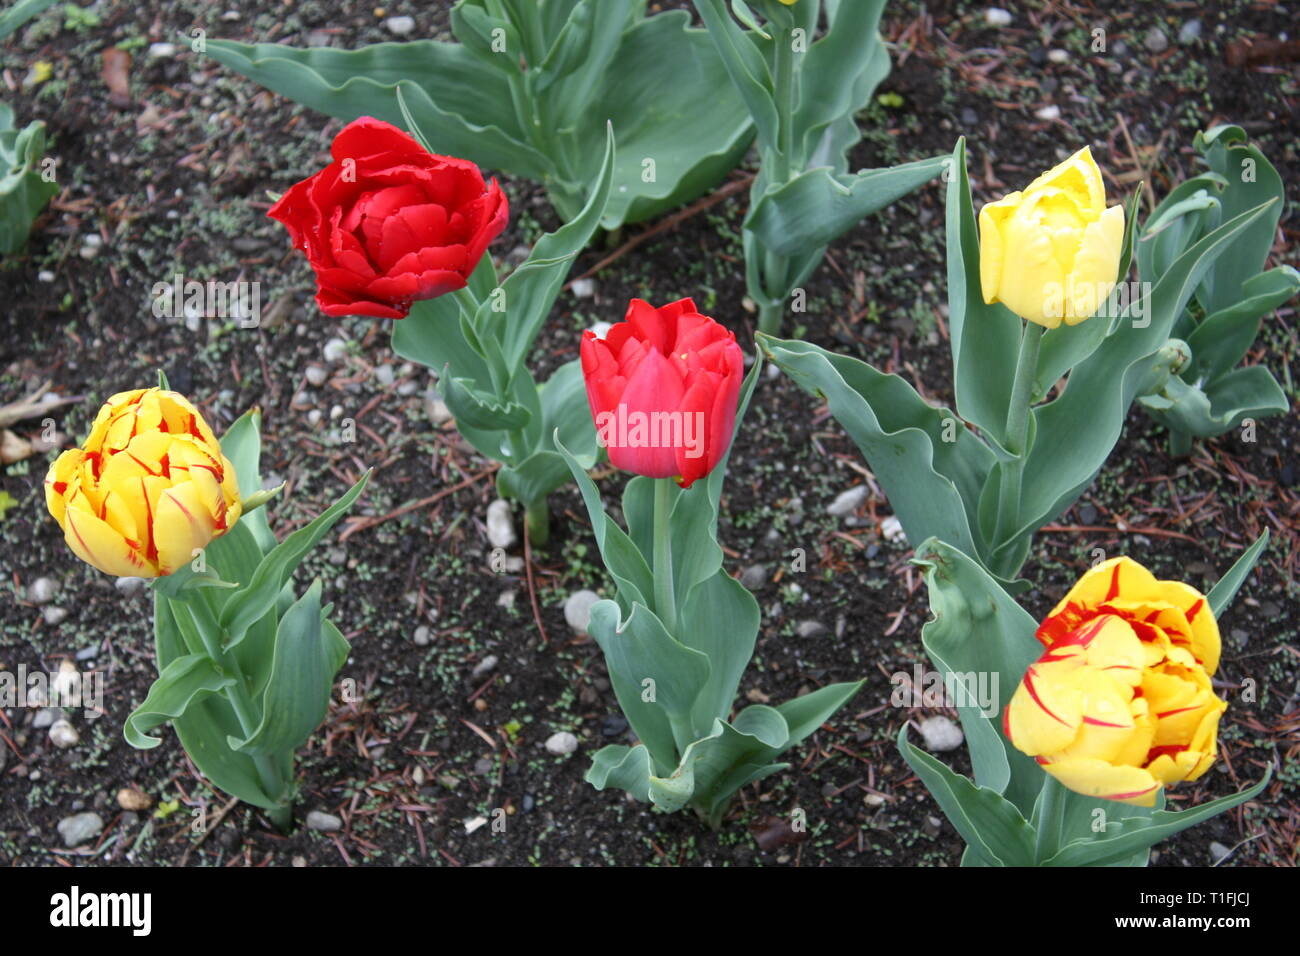 Tulips flowers in spring season Stock Photo